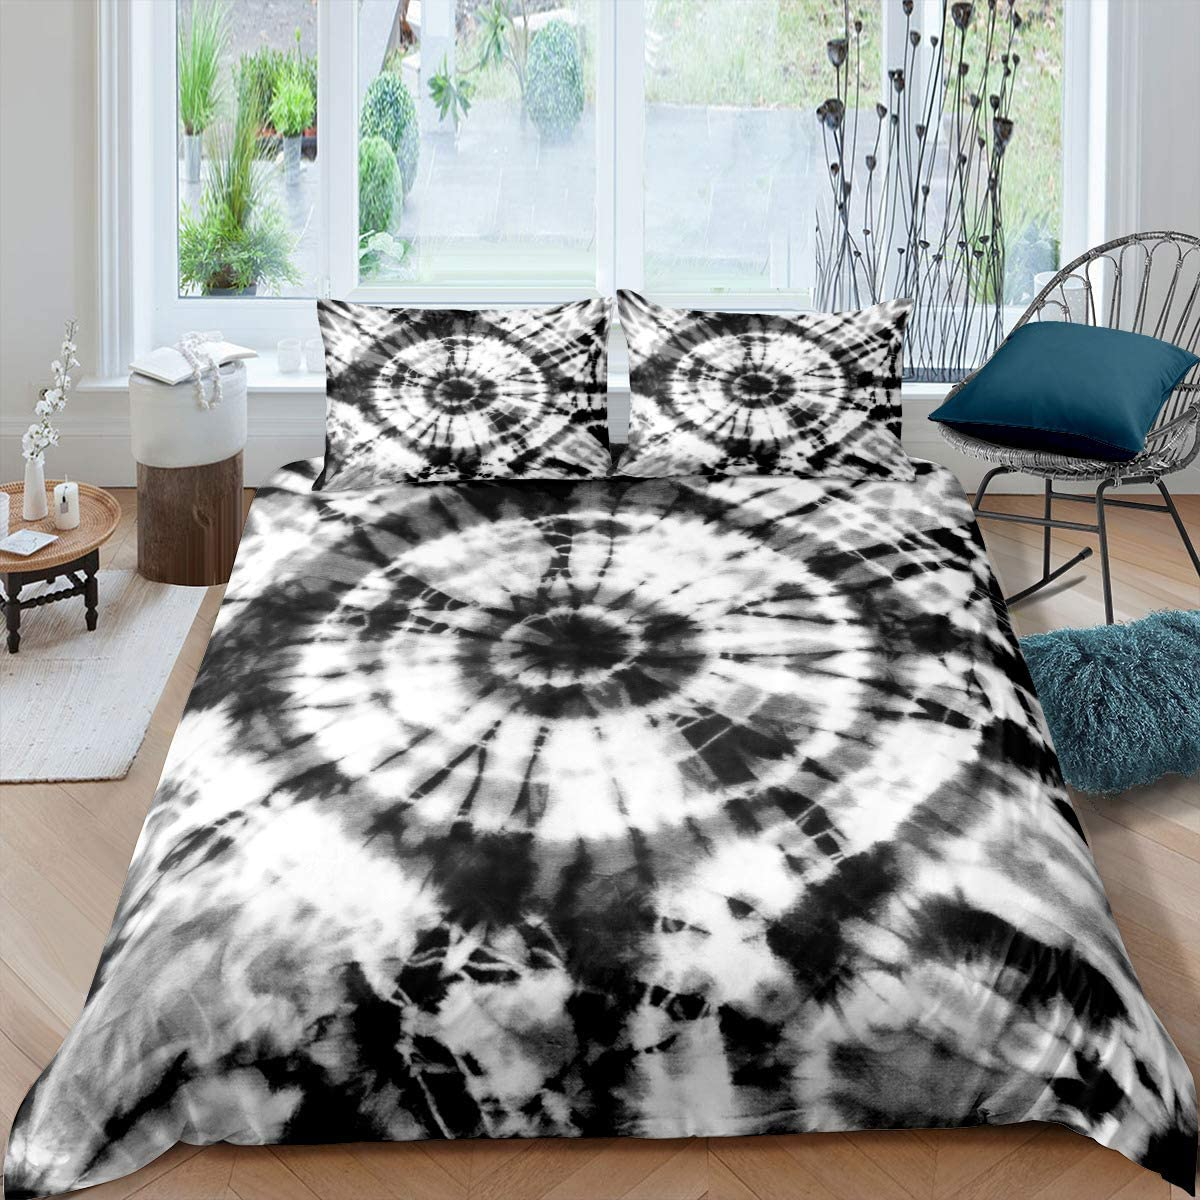 Manfei Tie Dye Comforter Cover Set White Black Swirl Pattern Duvet Cover Psychedelic Hippie Bedding Set 2pcs for Kids Girls Microfiber Bedspread Cover with 1 Pillow Case(No Comforter) Twin Size